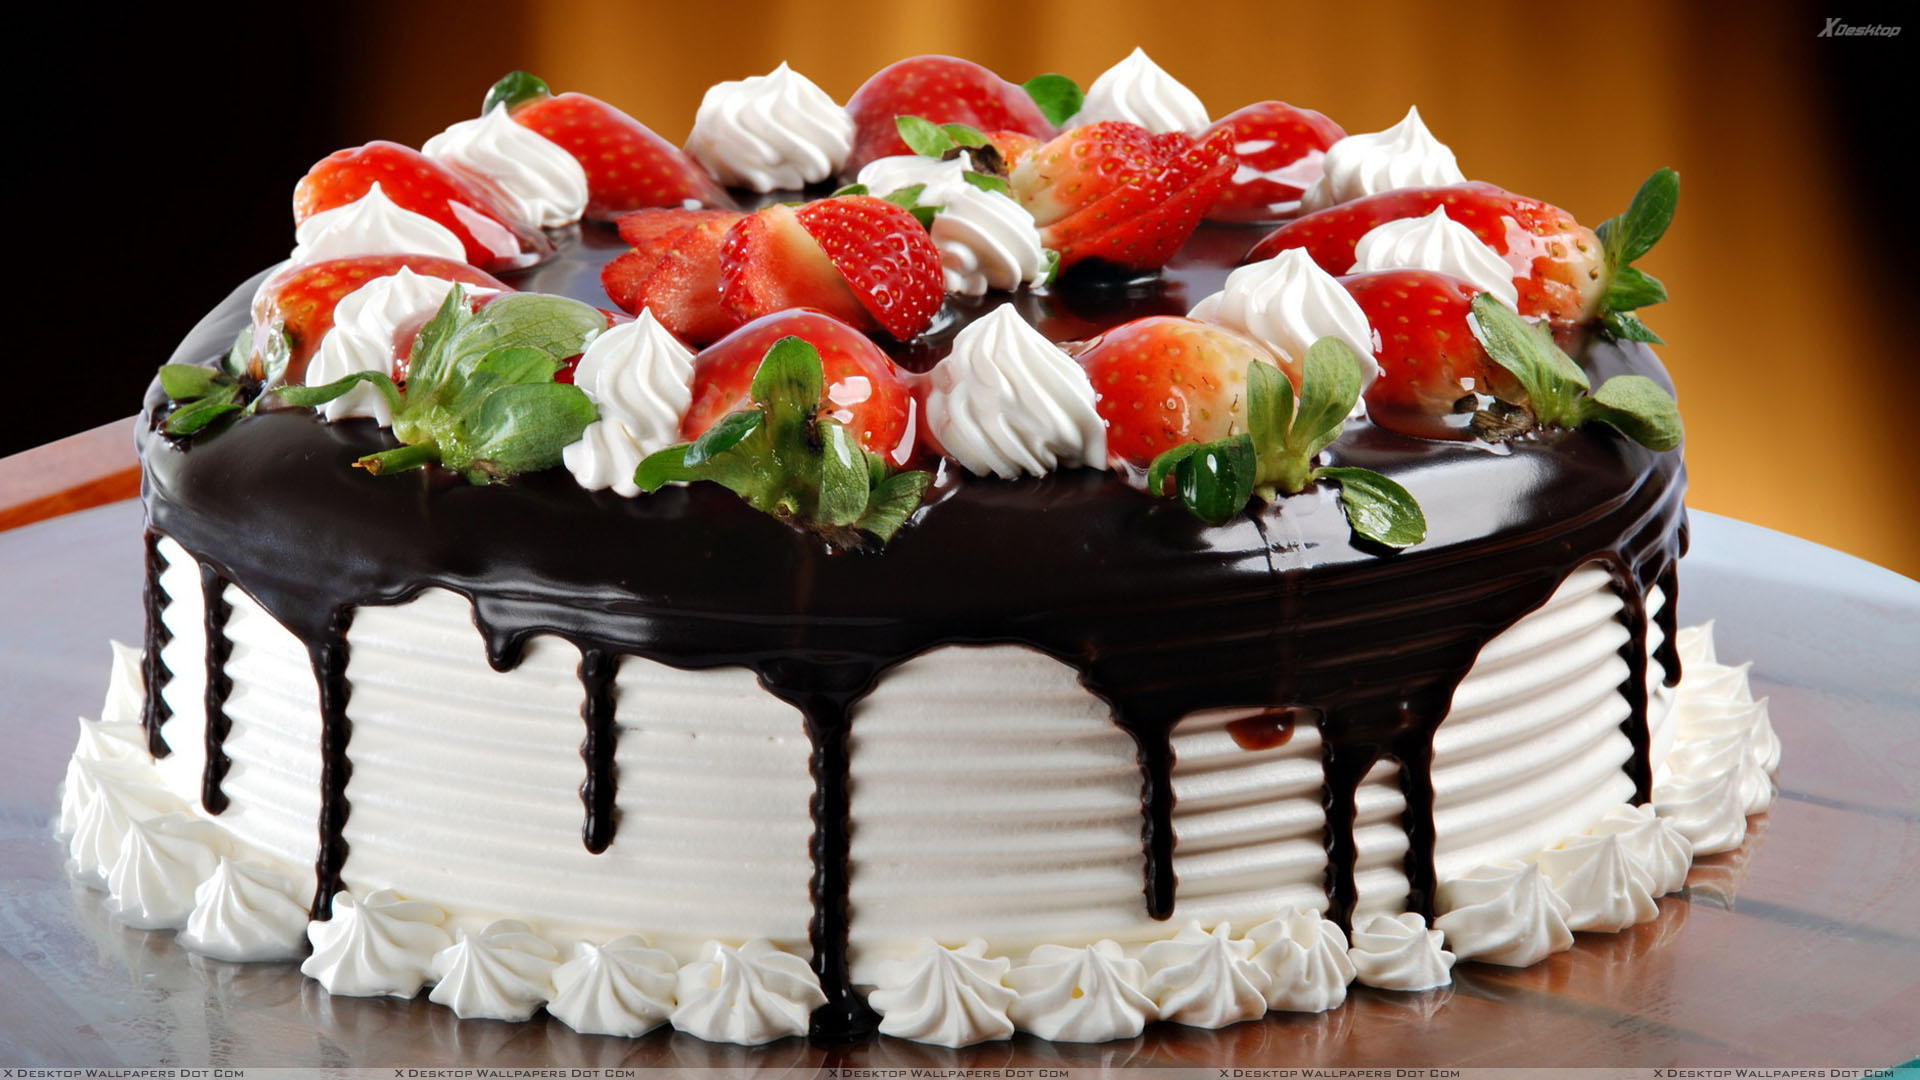 Strawberries And Chocolate Cake For Birthday Download 16